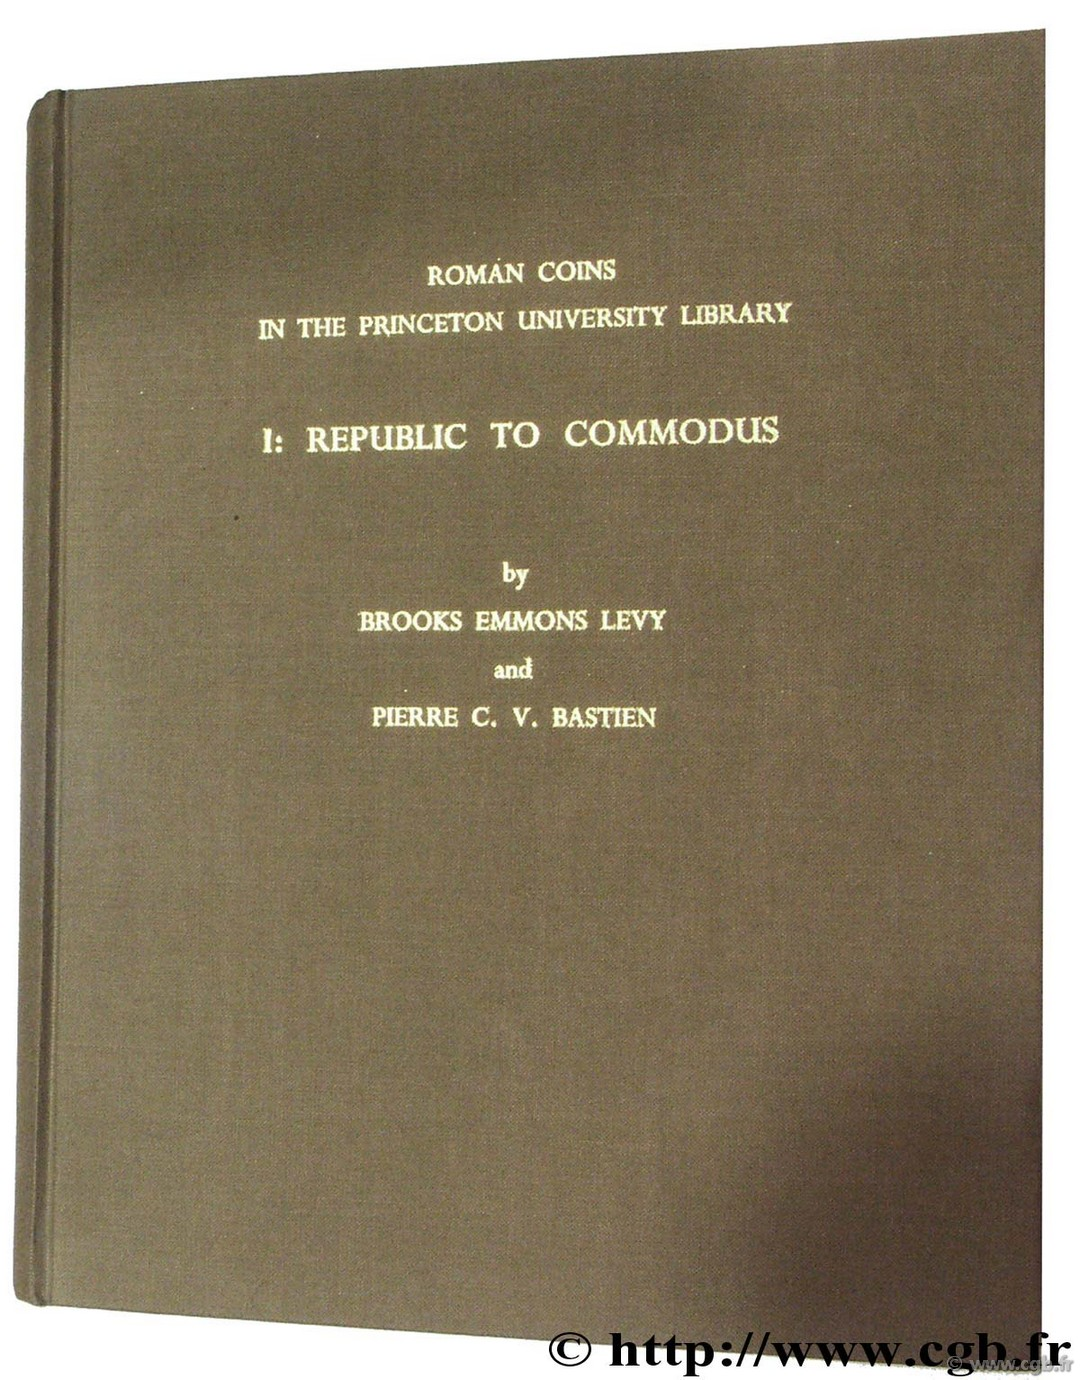 Roman Coins in the Princeton University, vol I : Republic to Commodus LEVY B.-E., BASTIEN P.